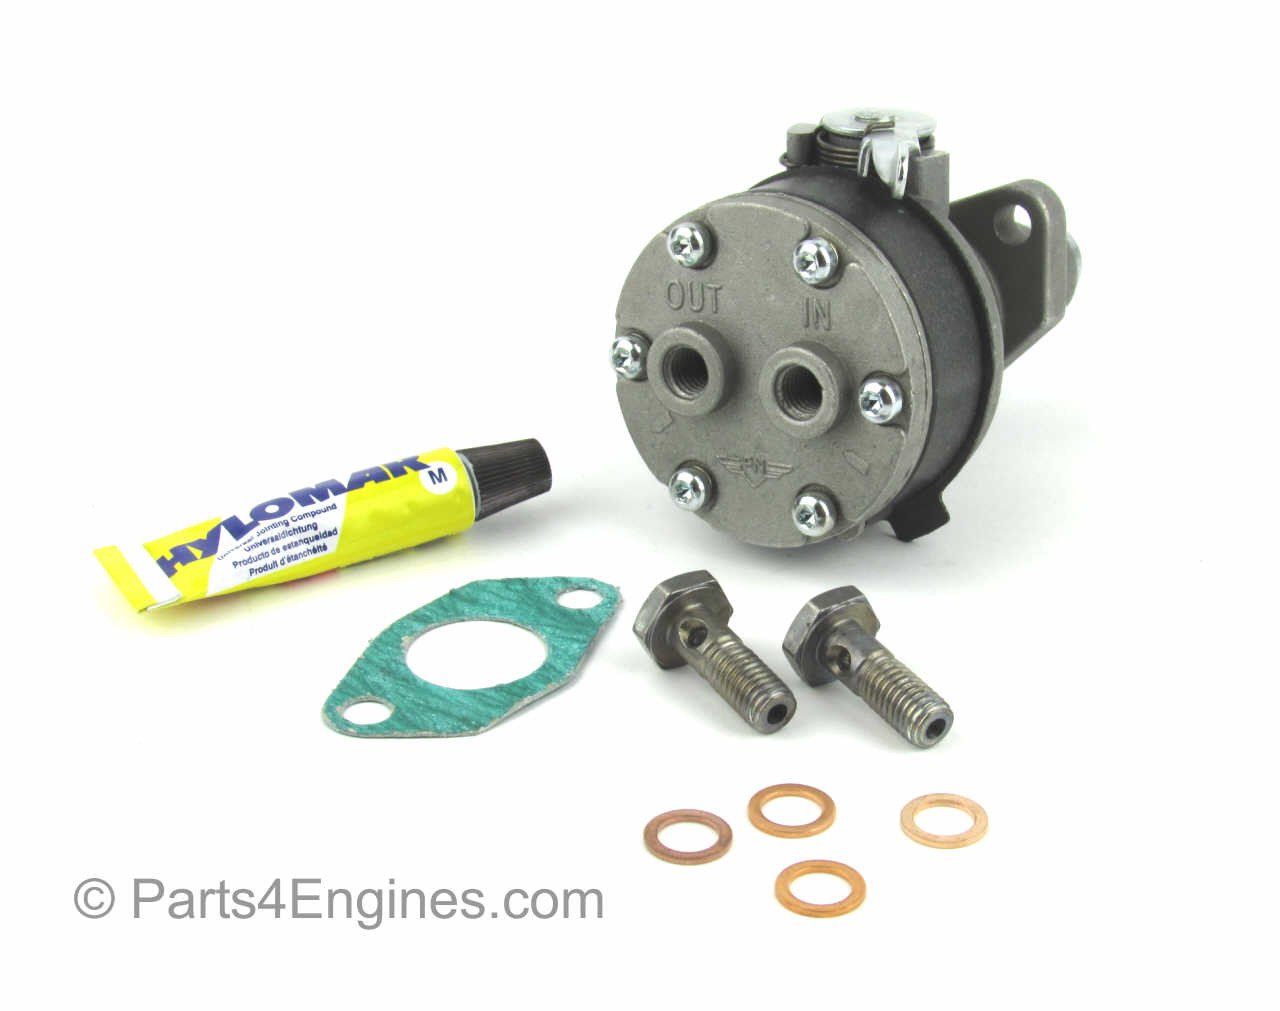 Type A - Perkins 400 series Fuel lift pump kit from parts4engines.com